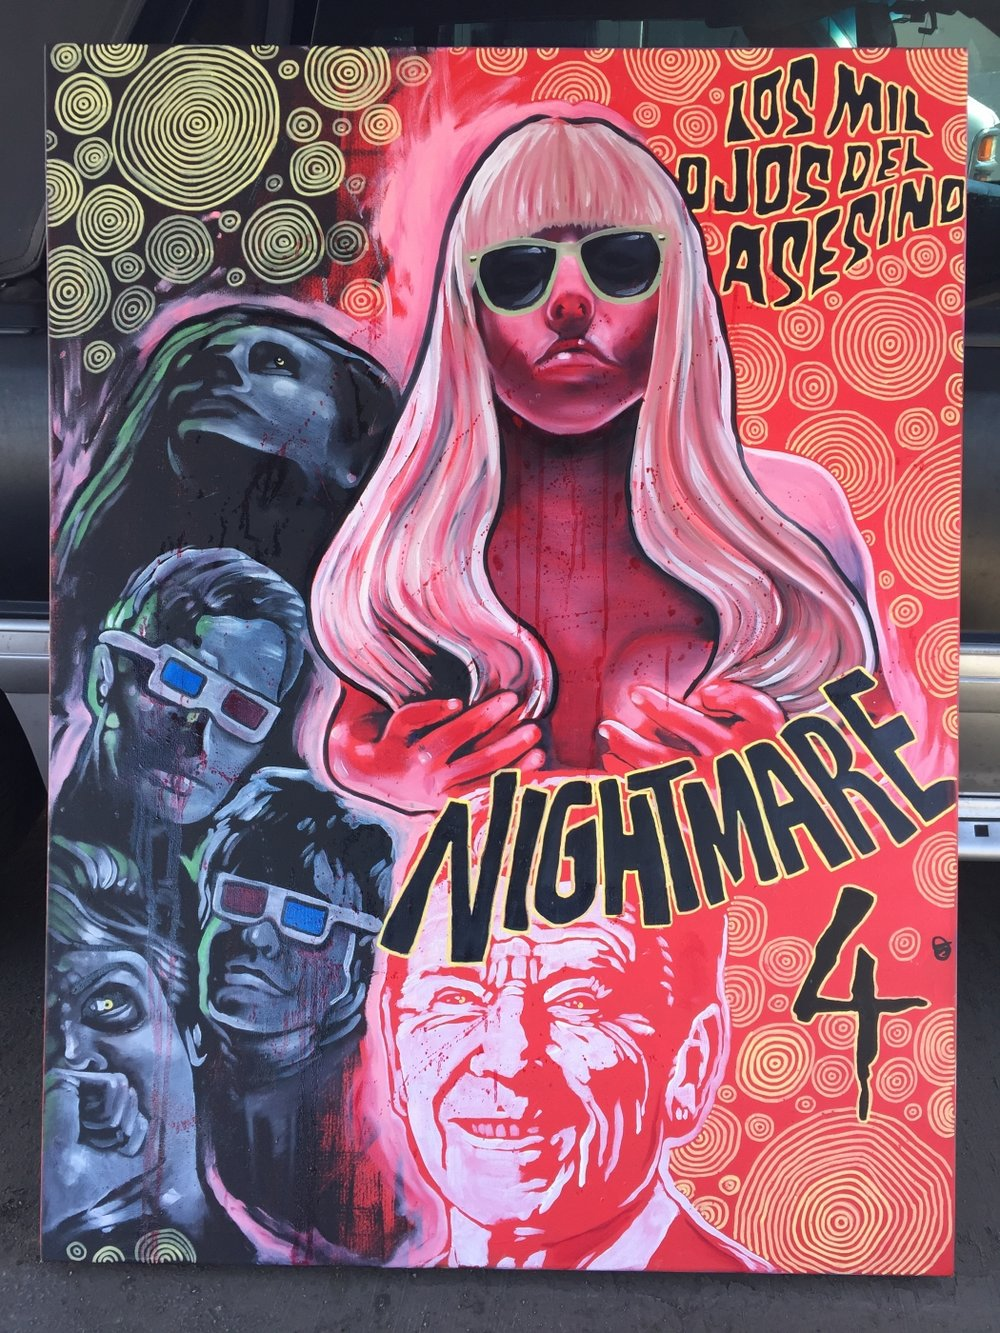 Jason-Adam-Dinger-Nighmare-4-2015.JPG